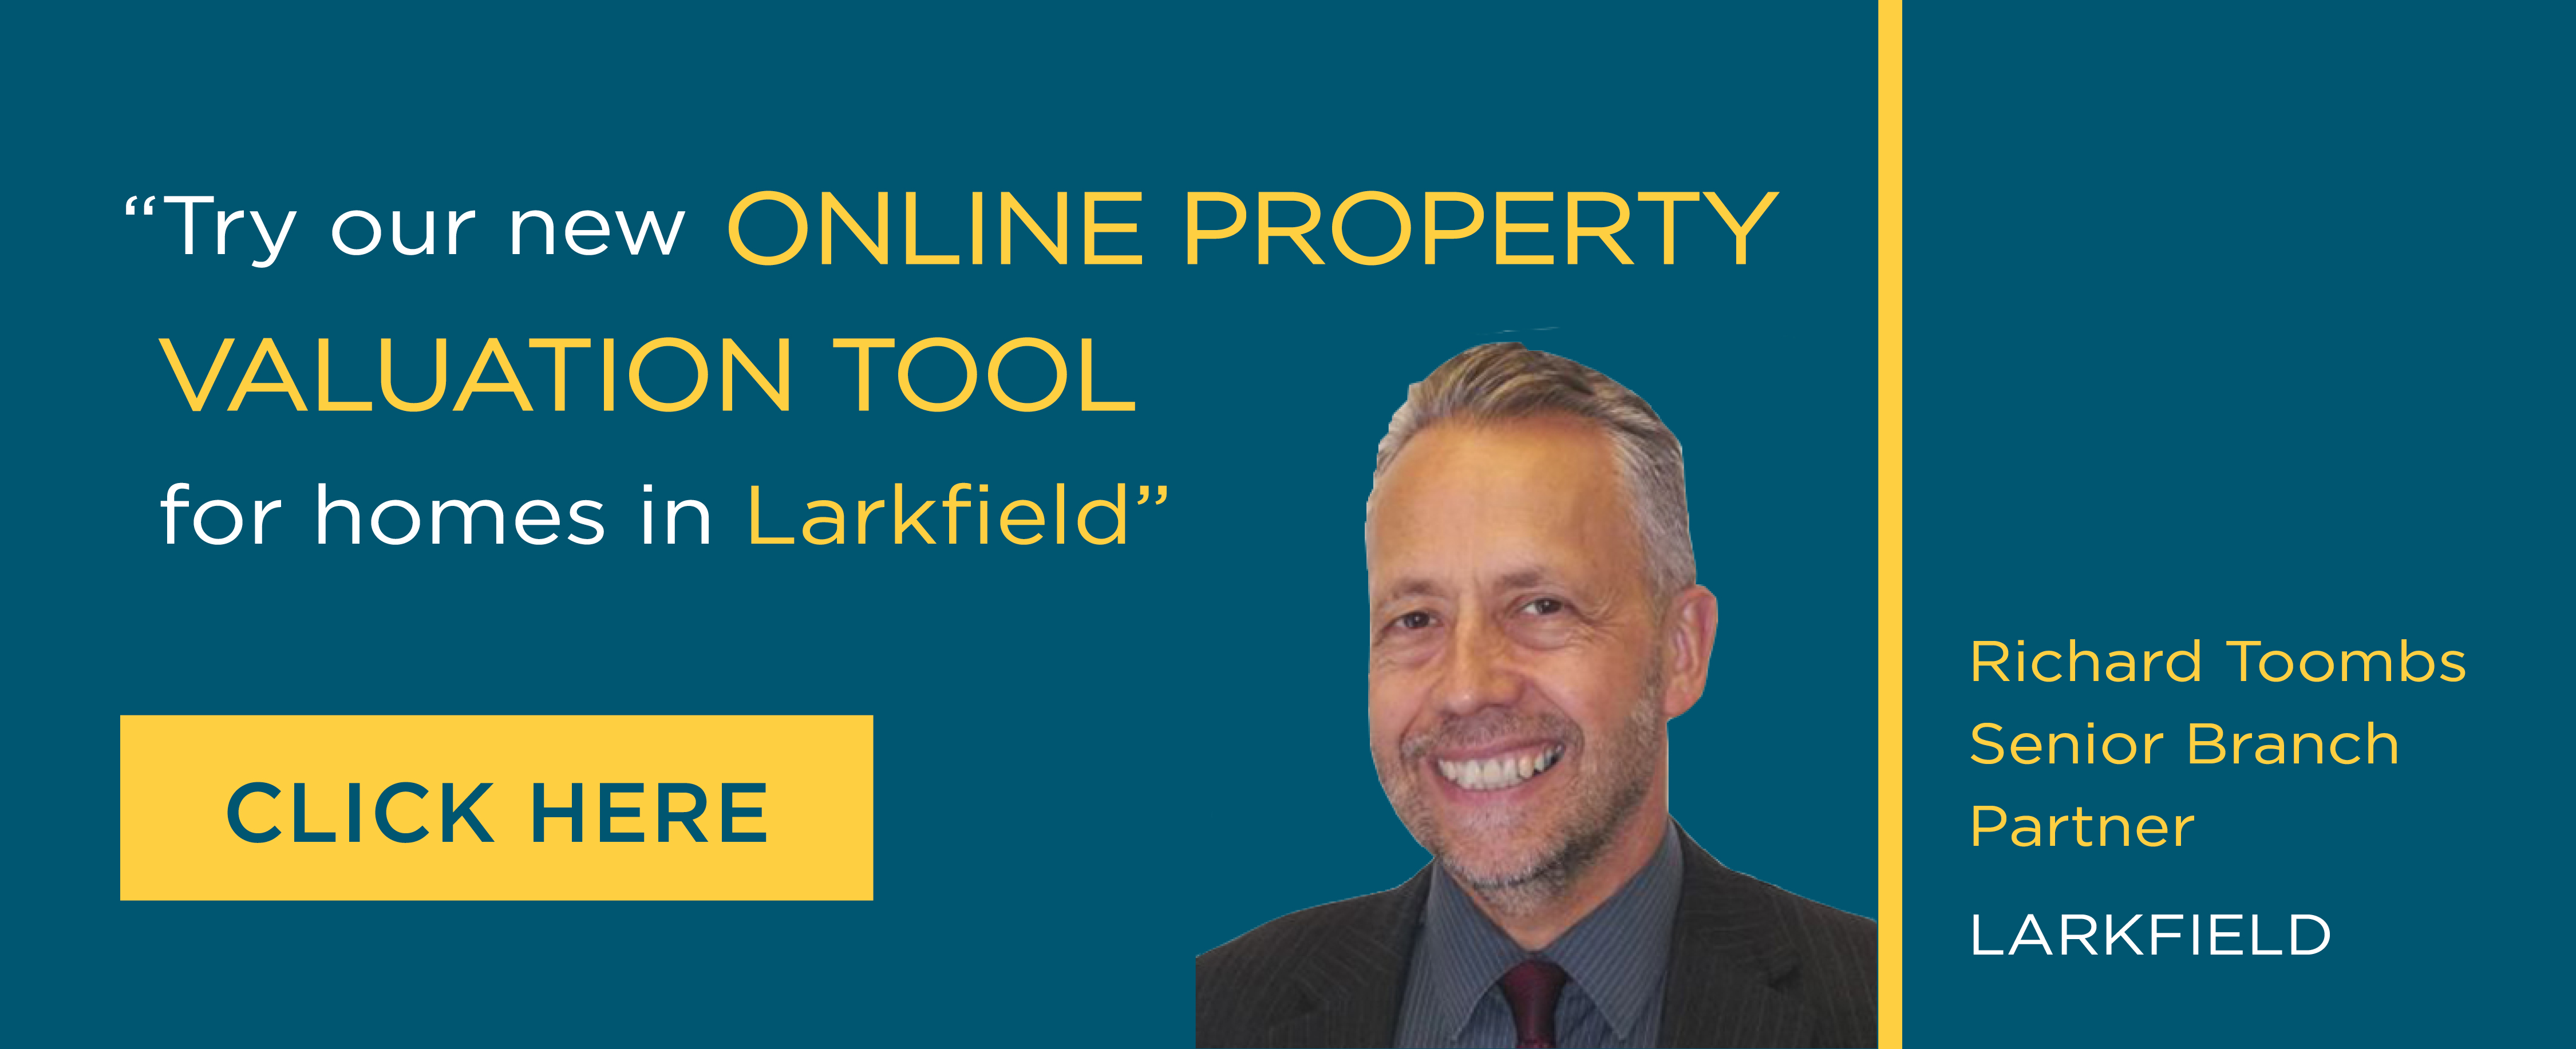 Online Valuation Tool website banner Larkfield